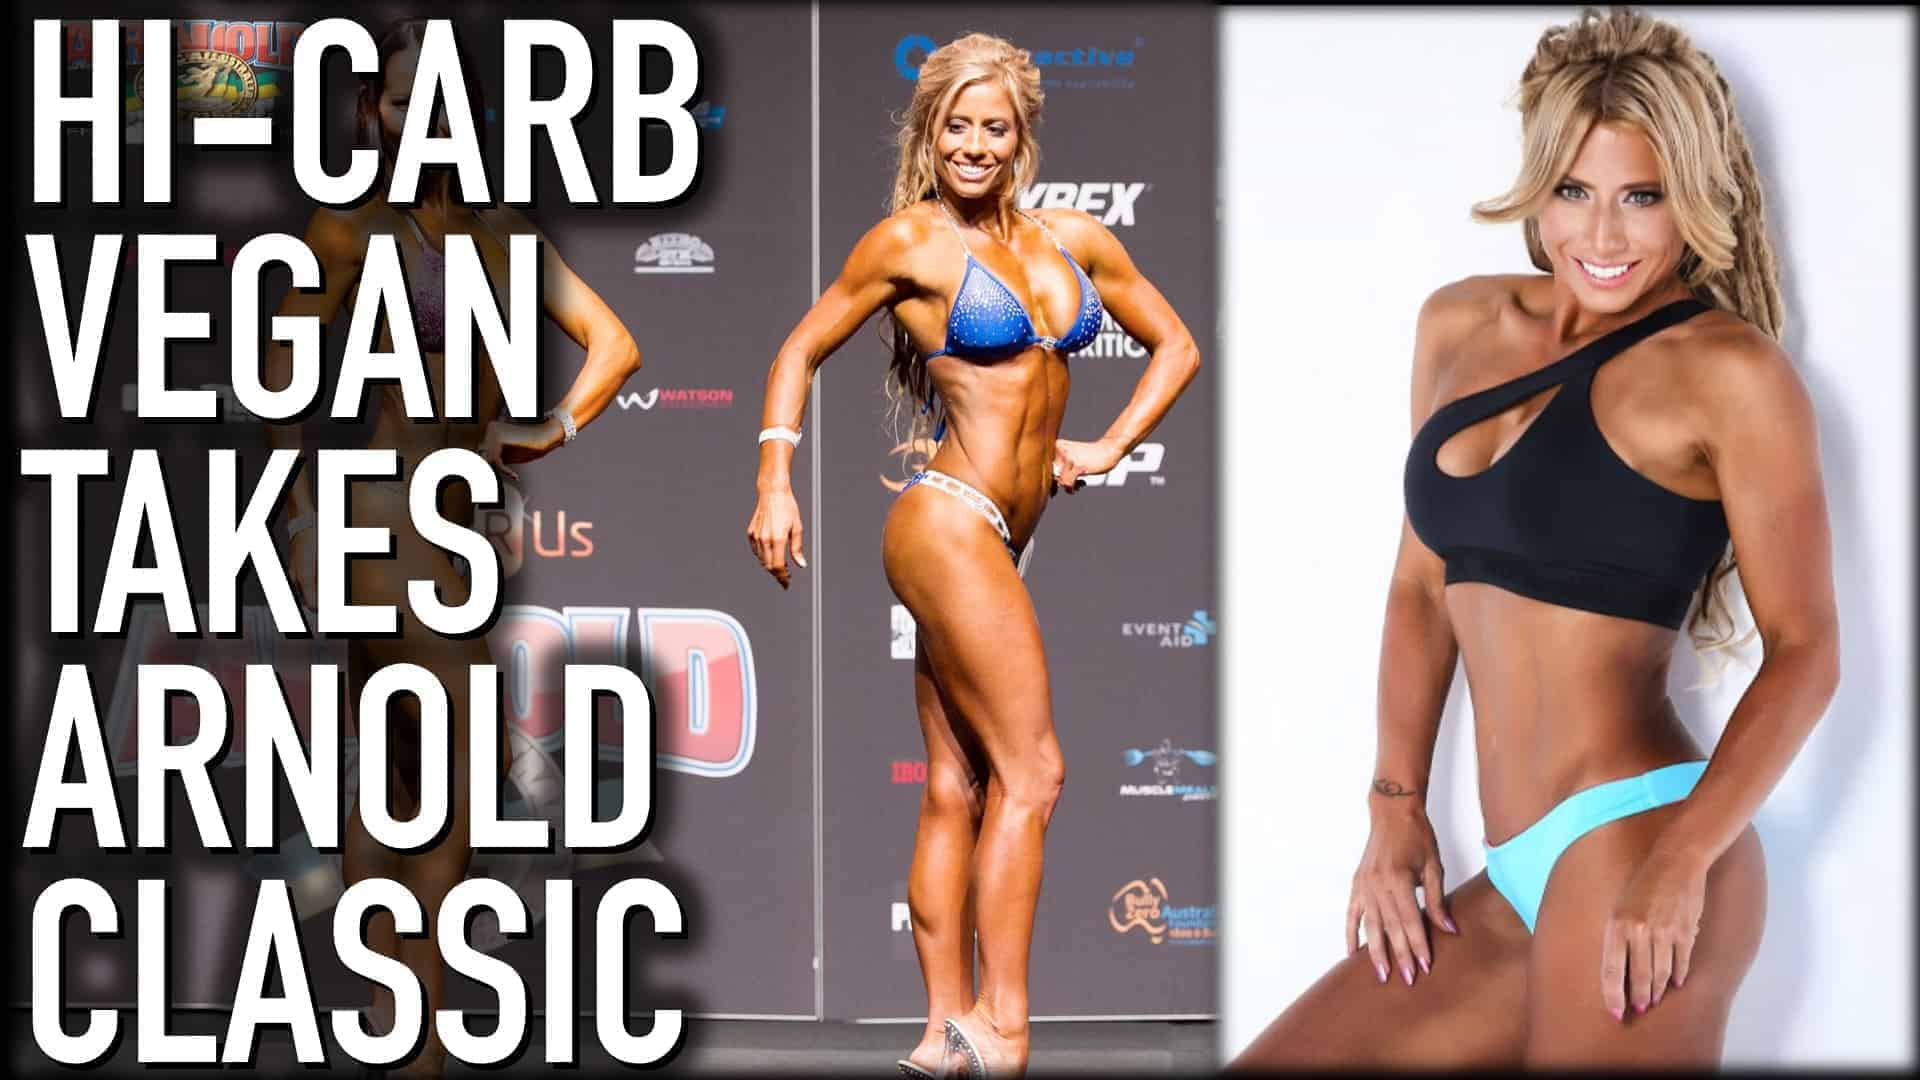 """Vegan athlete and bodybuilder Crissi Carvalho is shown twice, once on stage, posing, and once from a photoshoot. On the left on large white letters are the words """"Hi-carb vegan takes Arnold classic"""""""